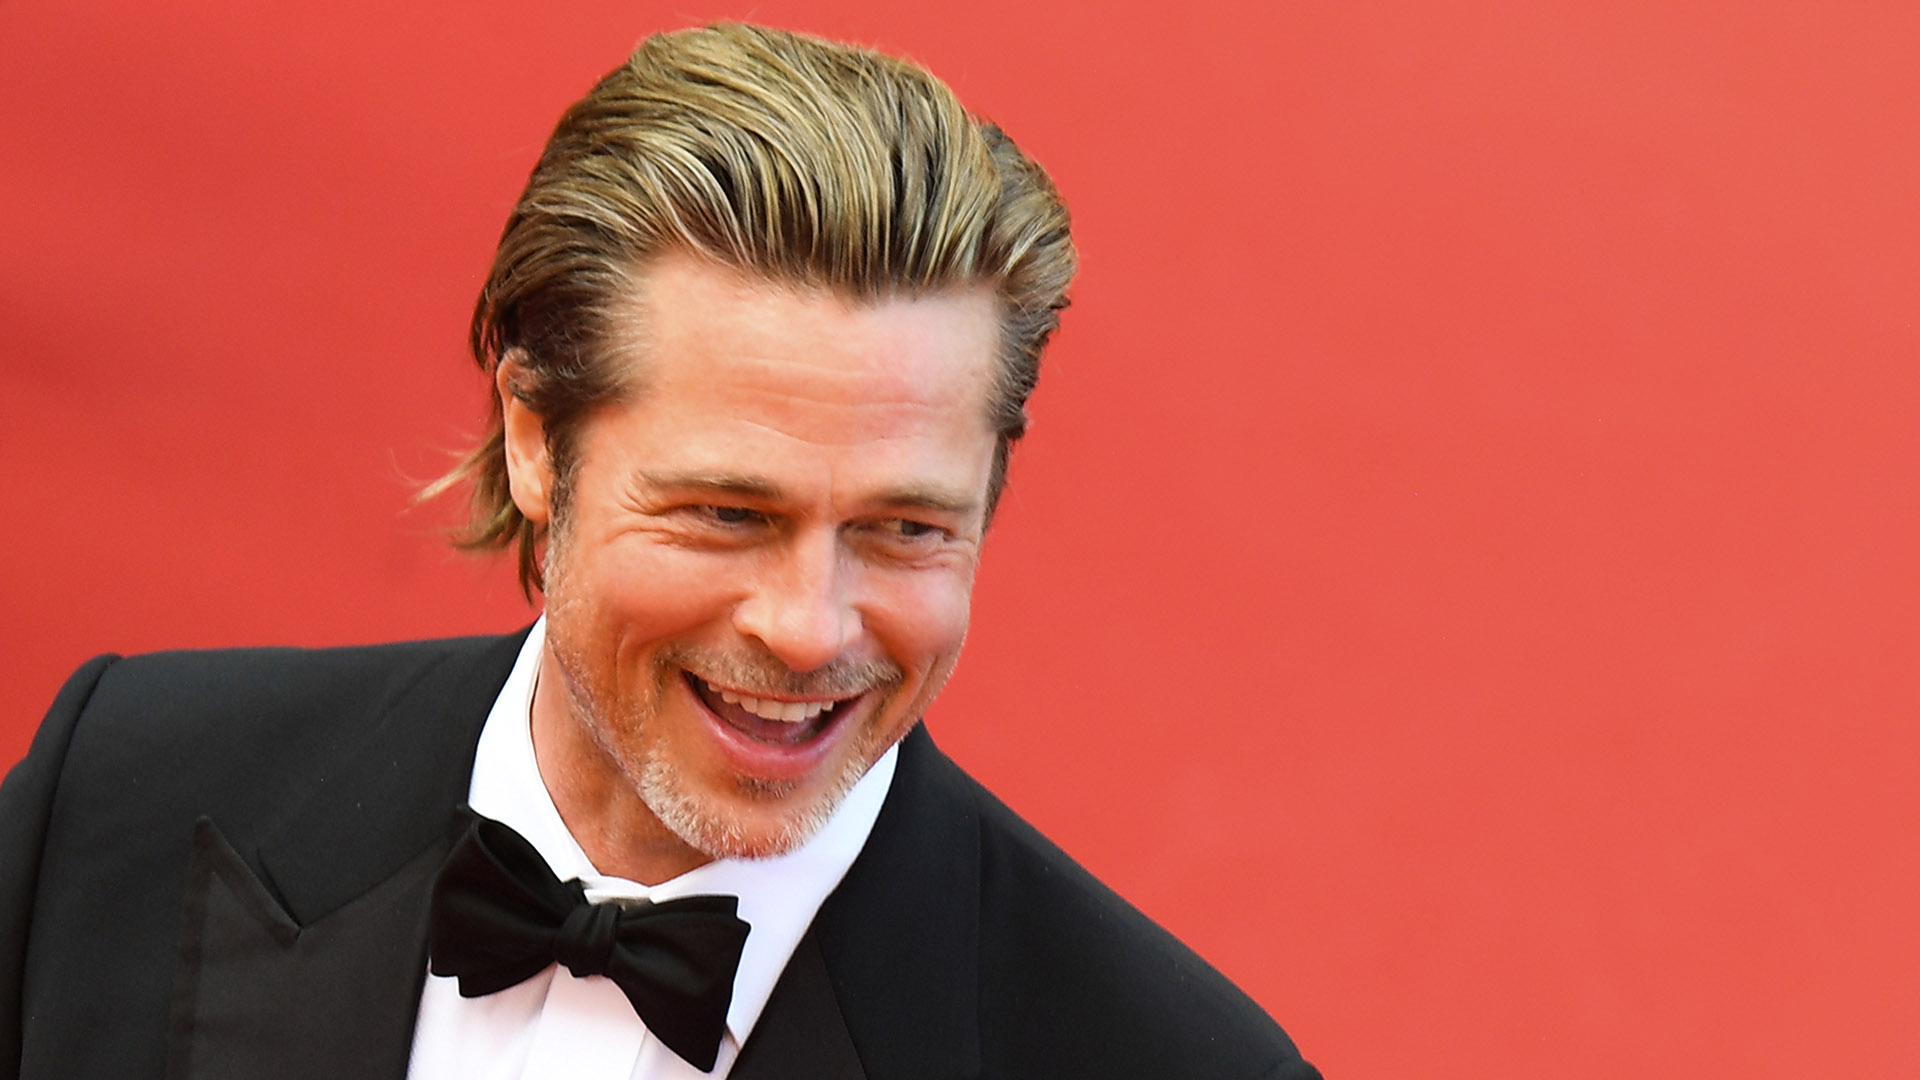 "Tras un largo tiempo fuera de los flashes de los paparazzi, Brad Pitt volvió a lo grande en el Festival de Cannes con la presentación de """"Once Upon A Time In Hollywood"" junto a Quentin Tarantino y Leonardo DiCaprio"